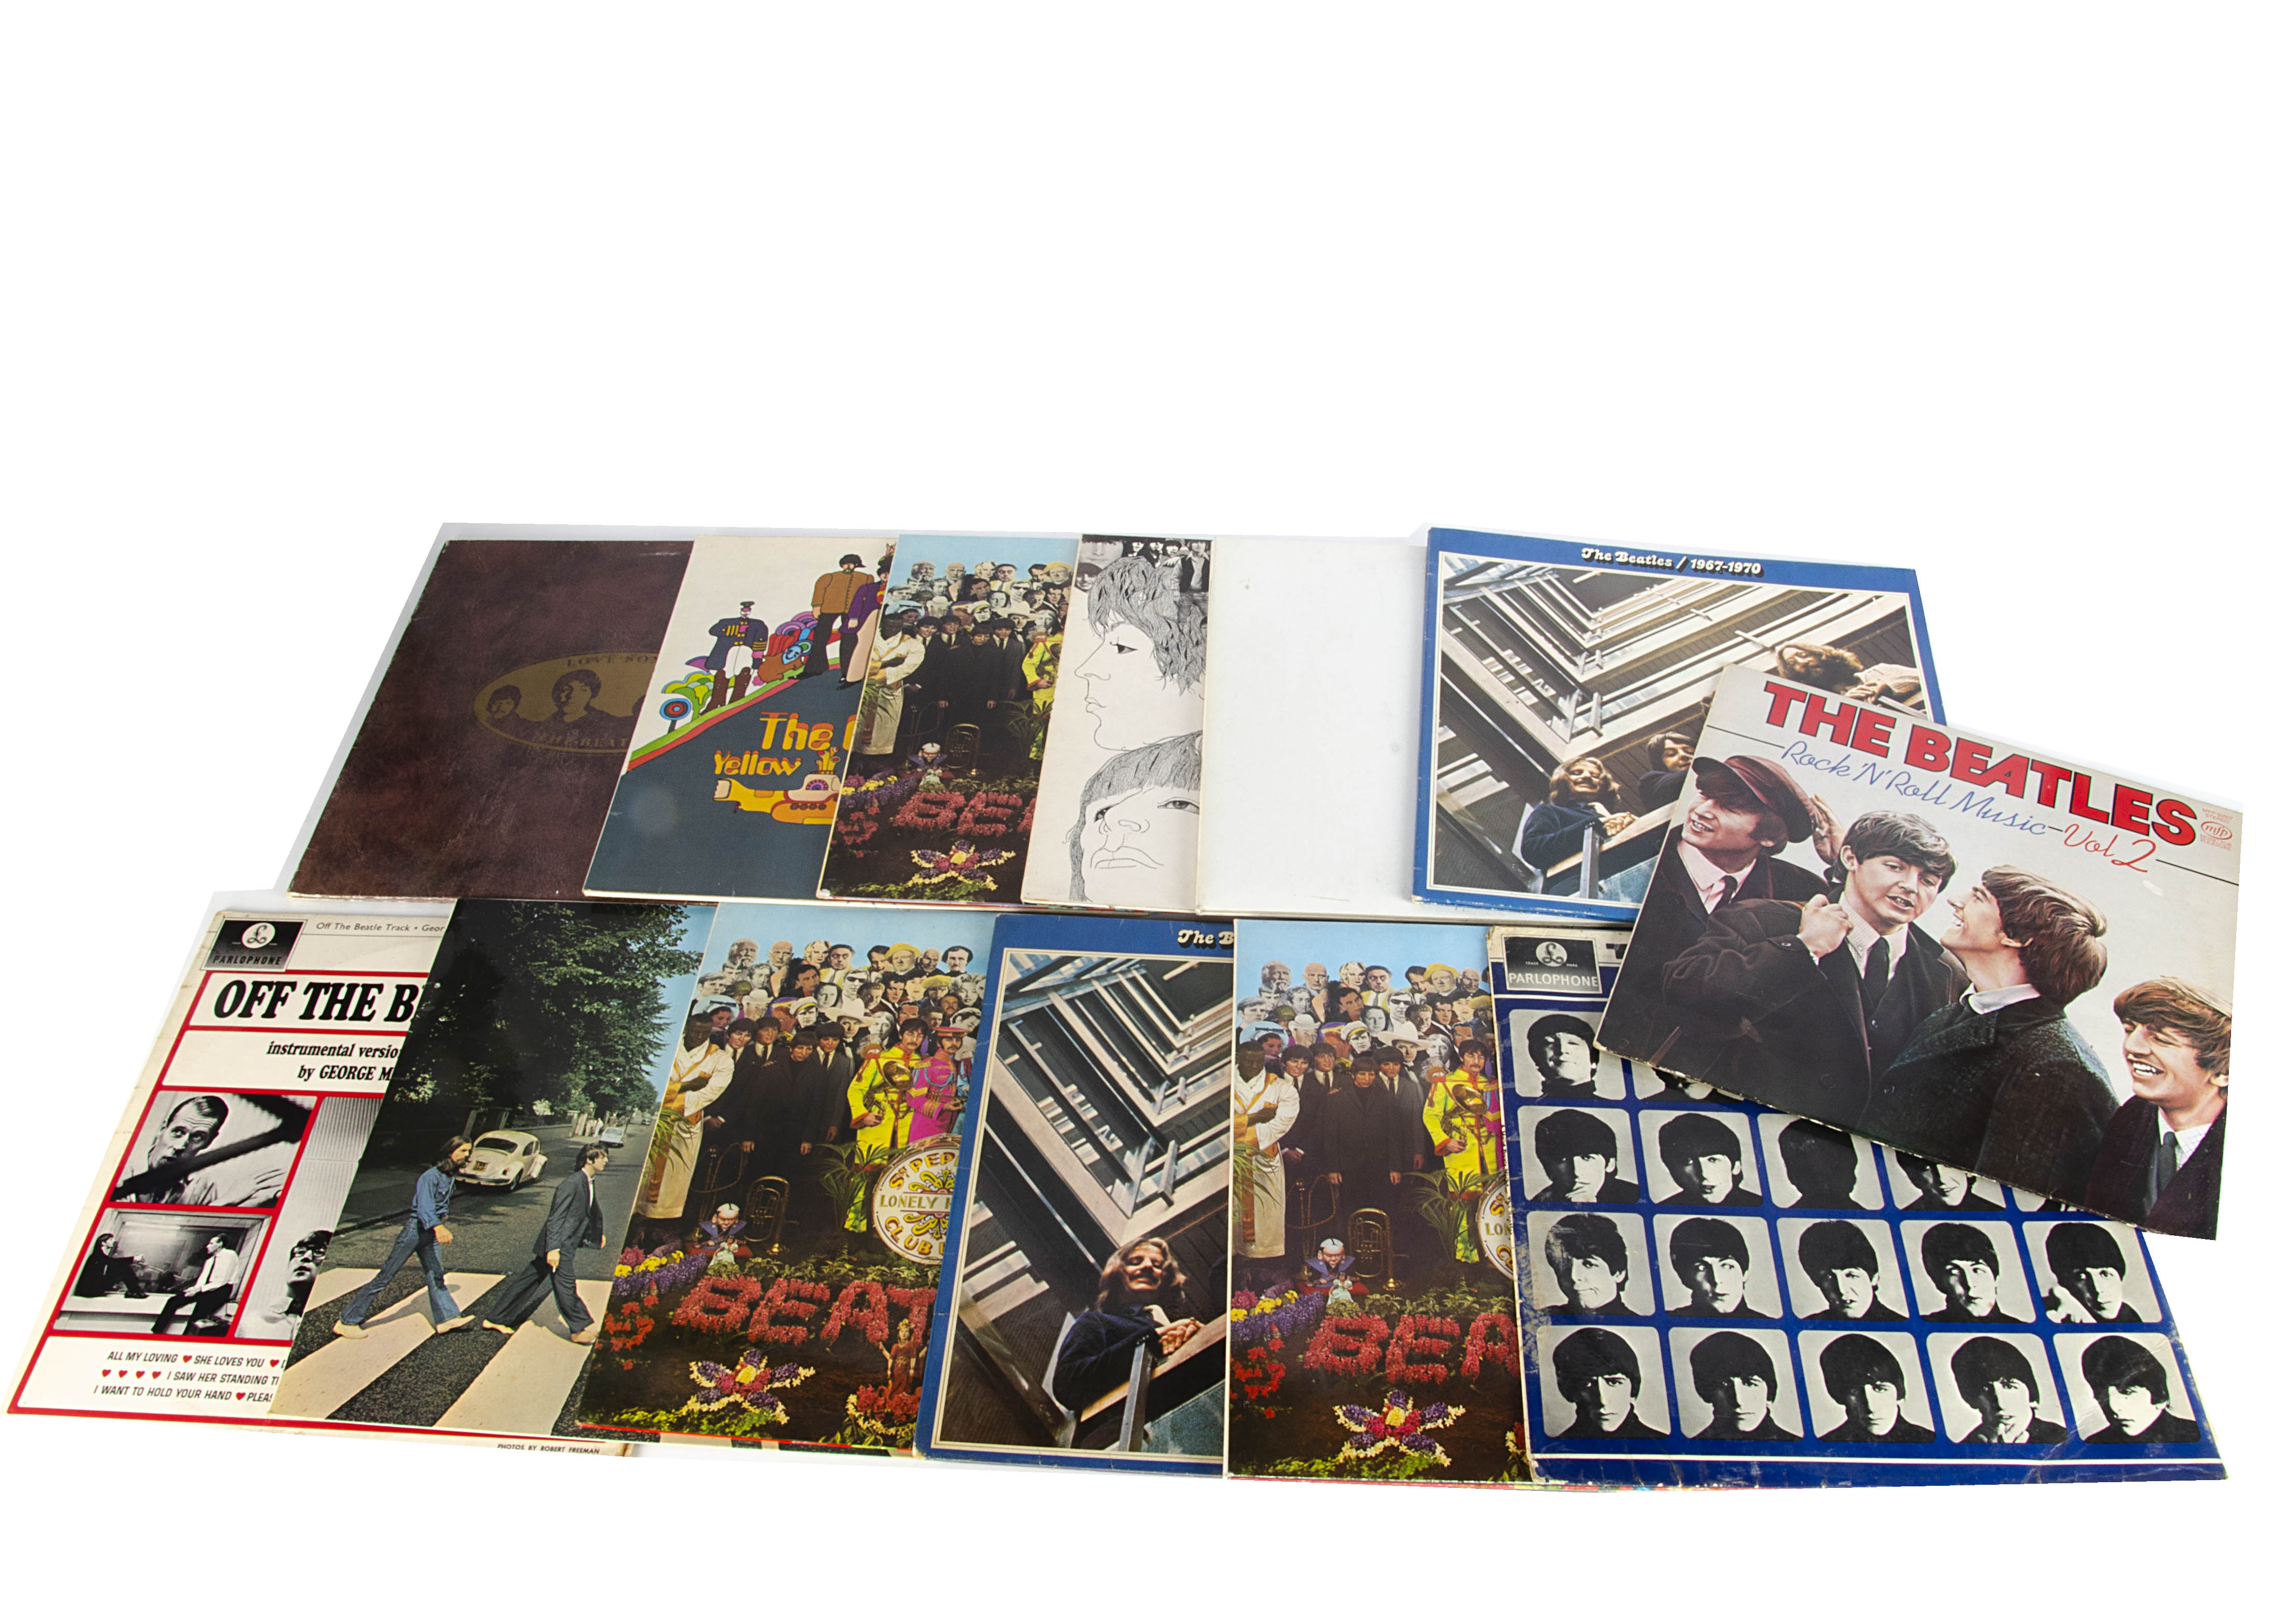 Beatles LPs, thirteen albums including originals, reissues and overseas releases comprising White